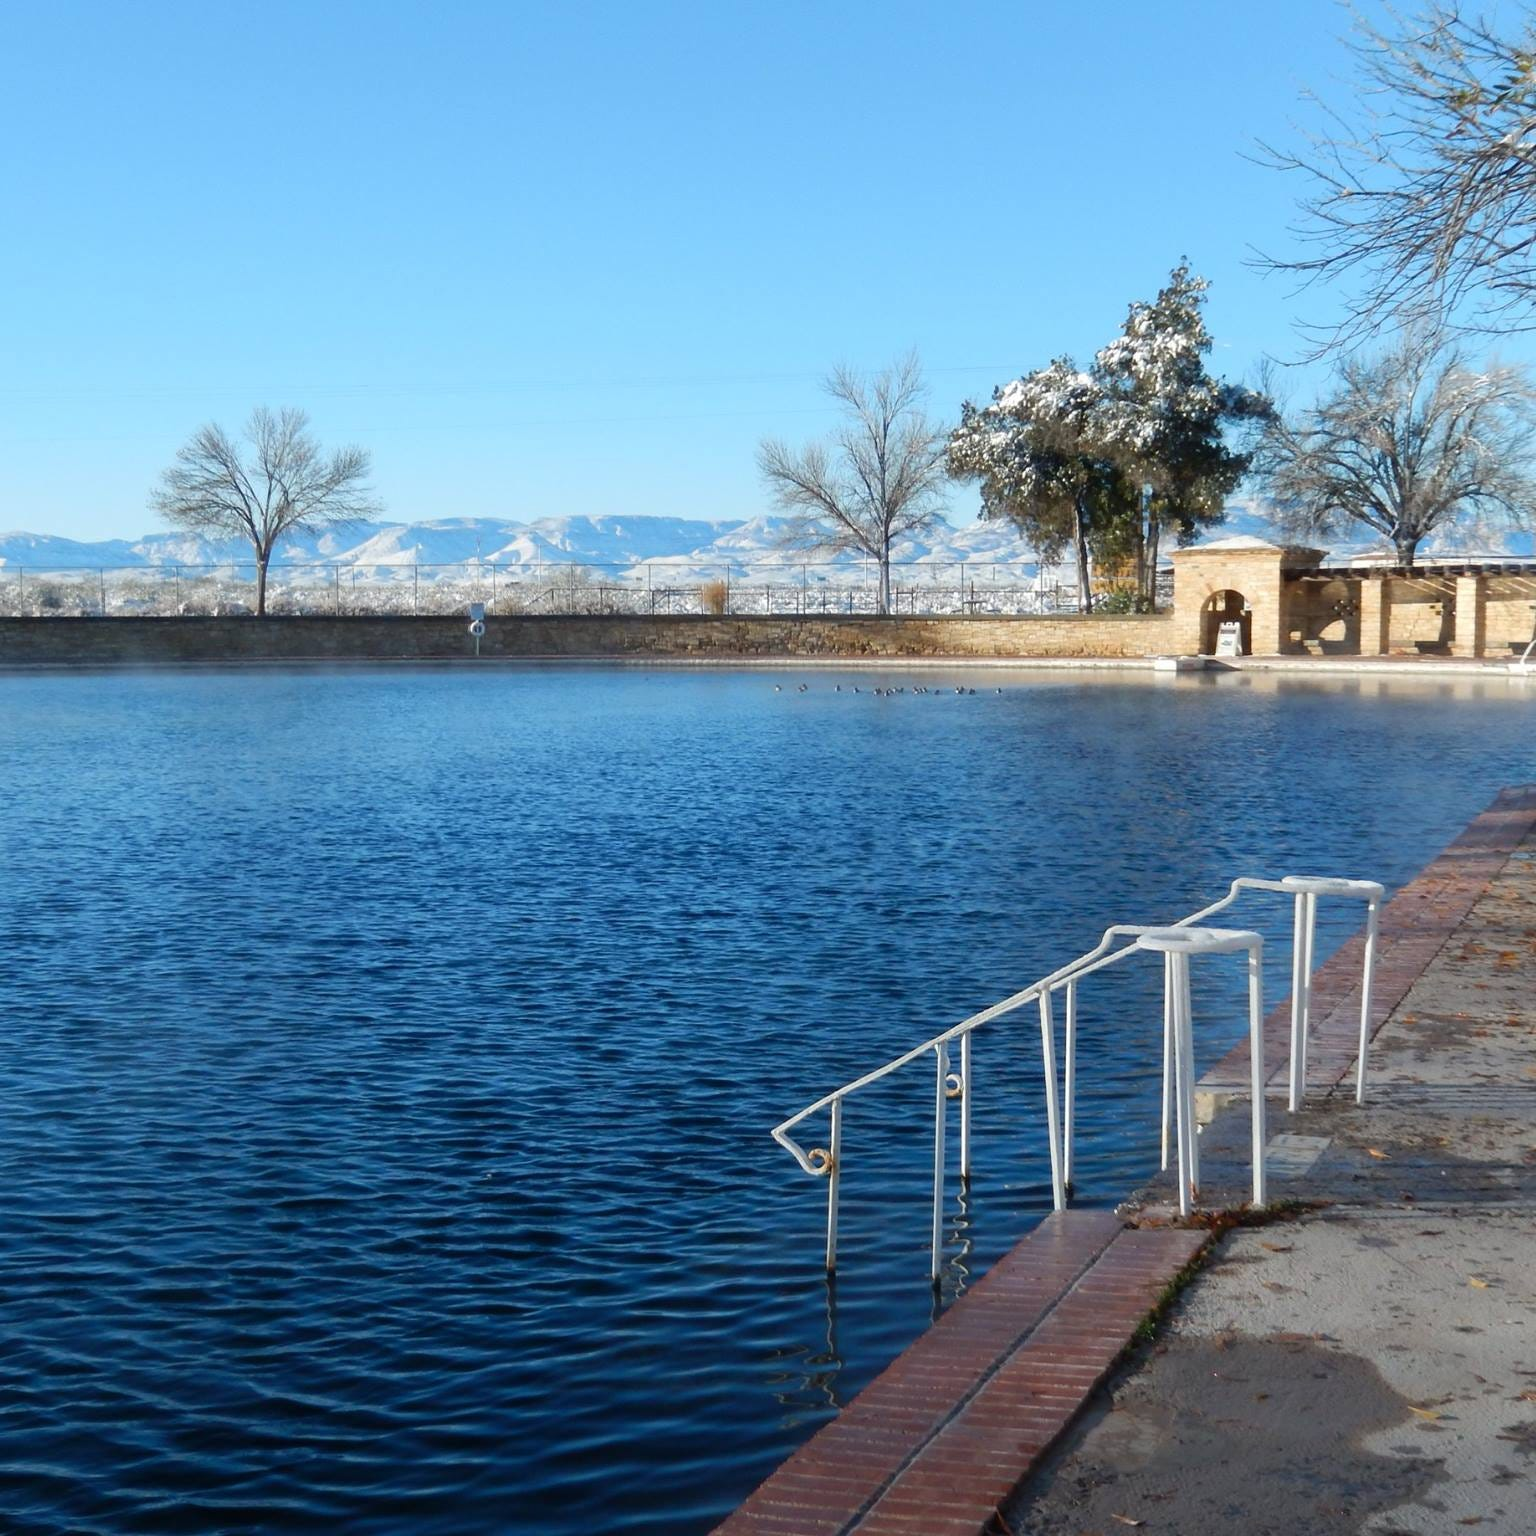 World's largest spring-fed swimming pool at Balmorhea State Park reopens